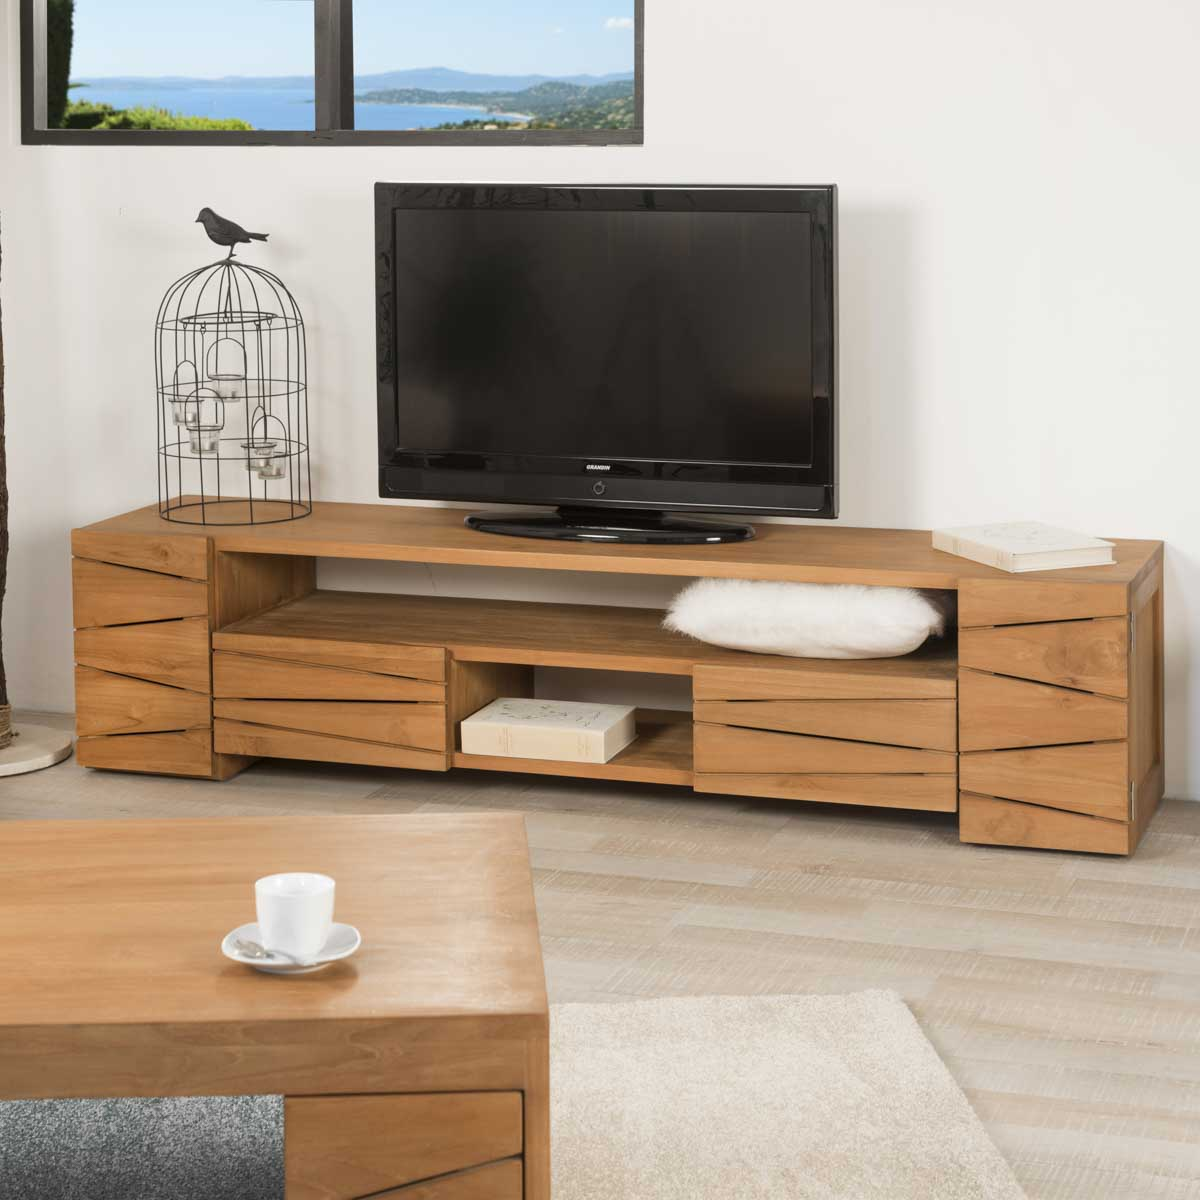 Meuble Tv Teck Meuble Tv Bois Naturel Rectangle S R Nit 170  # Transformer Un Meuble Tv